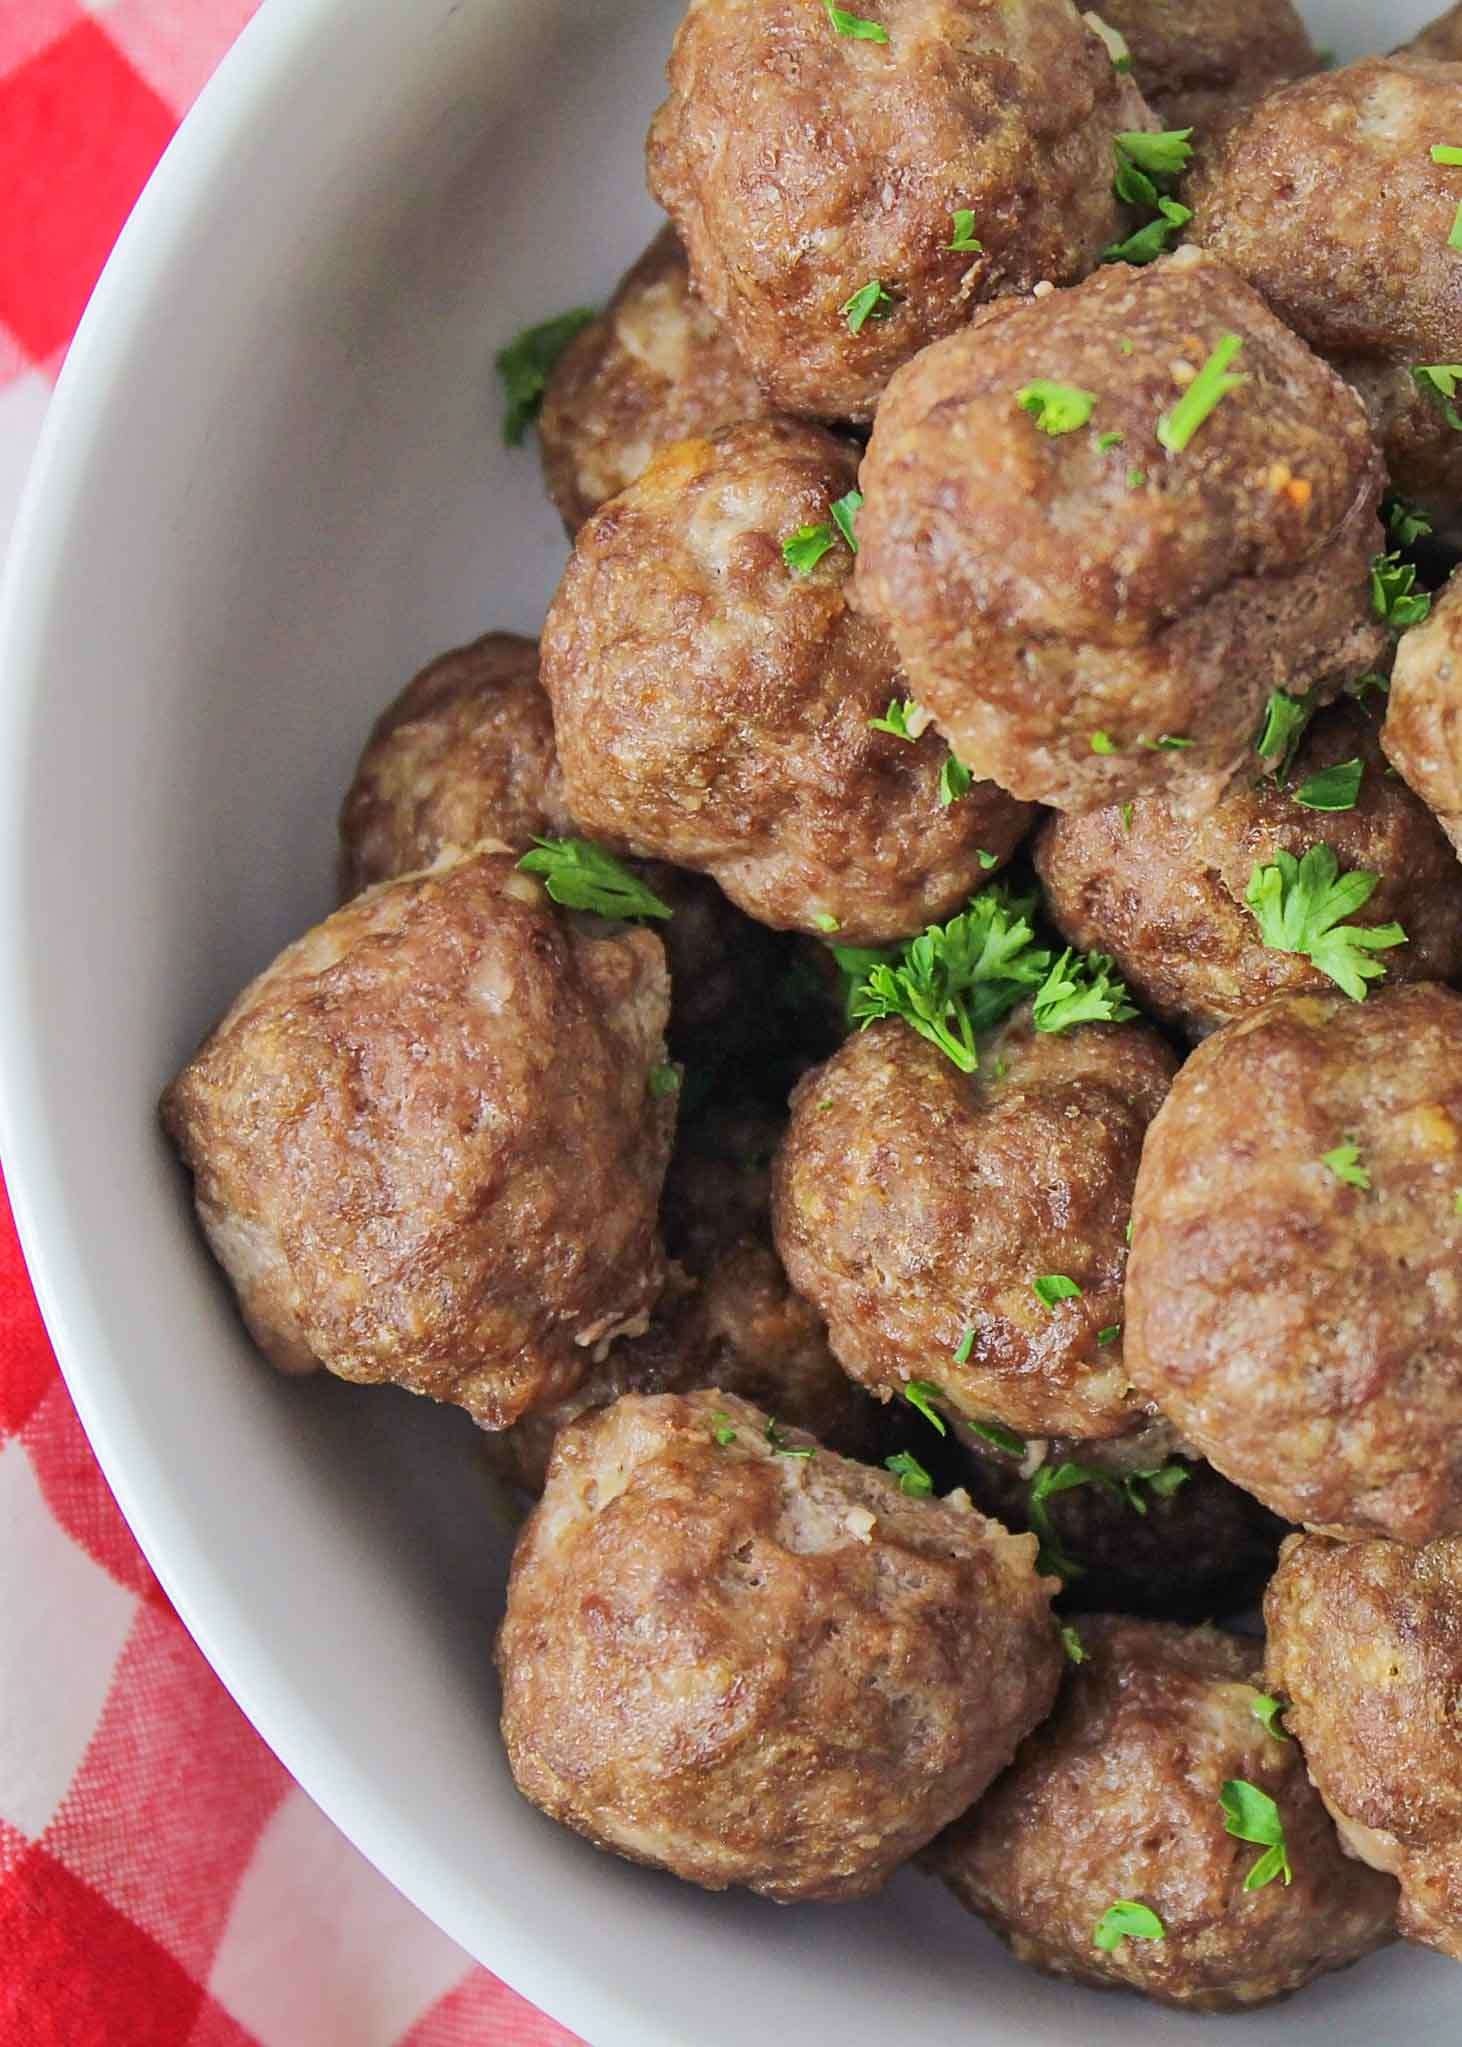 Homemade meatballs in white bowl